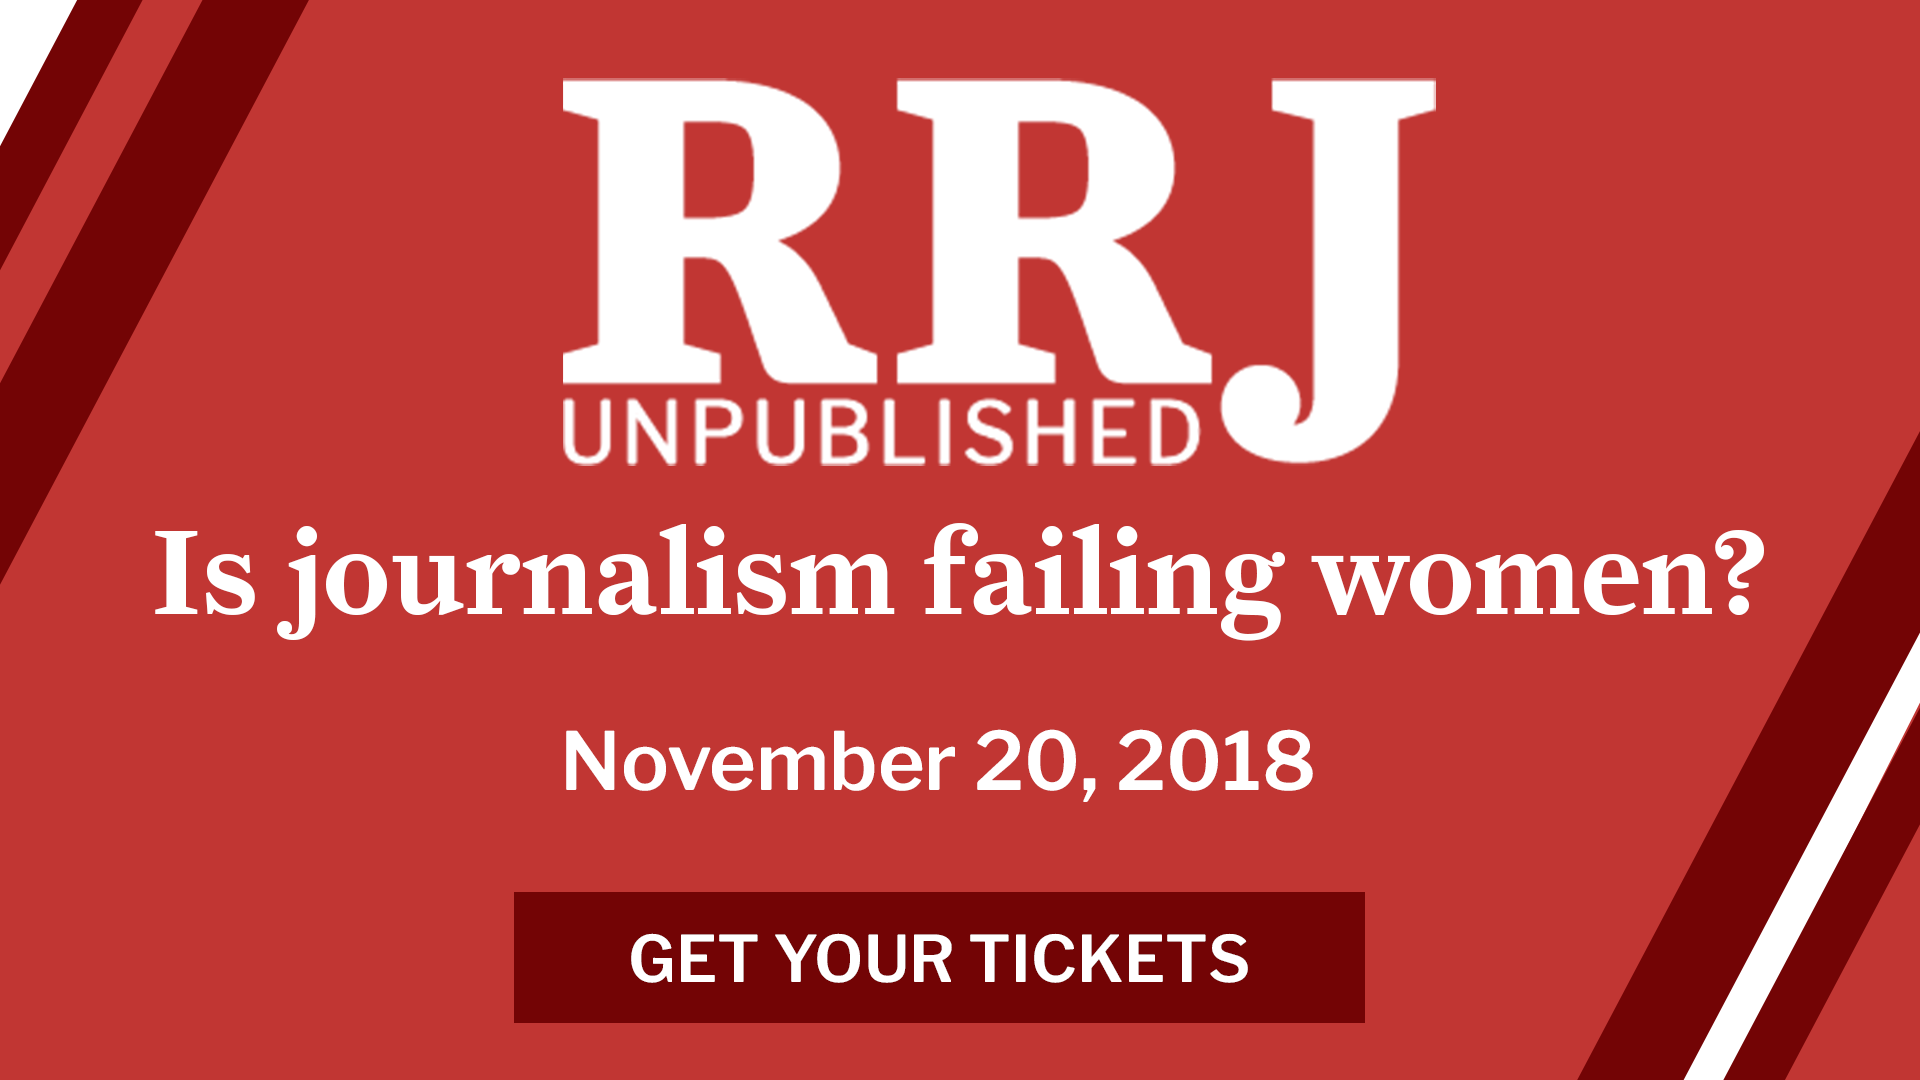 RRJ Unpublished: Is journalism failing women